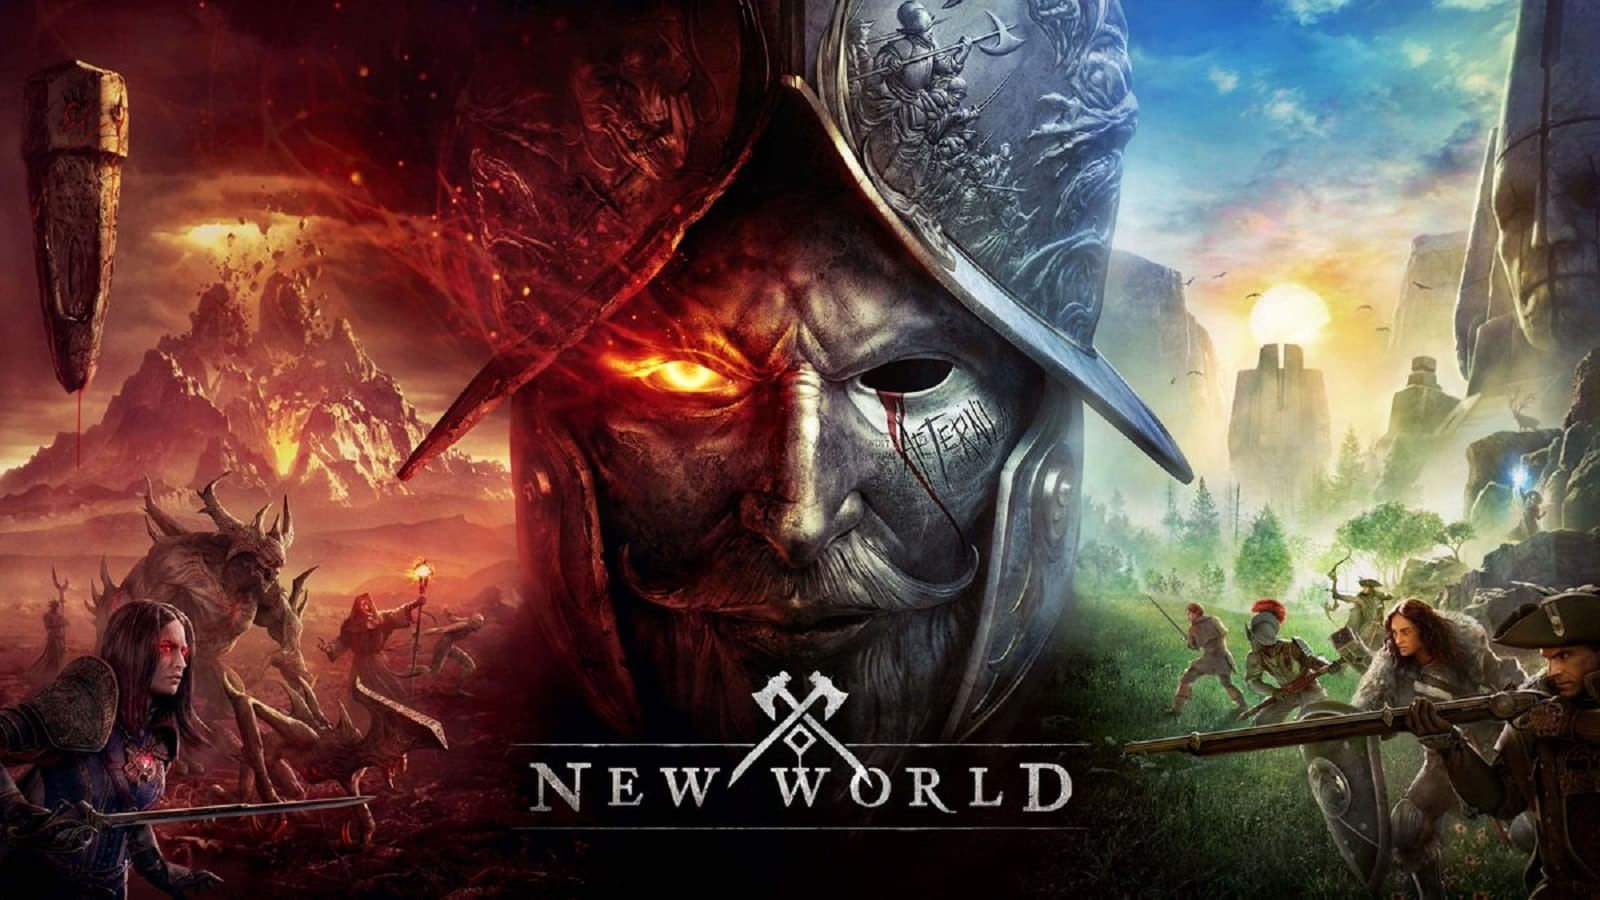 New World promotional image showing a battlefield